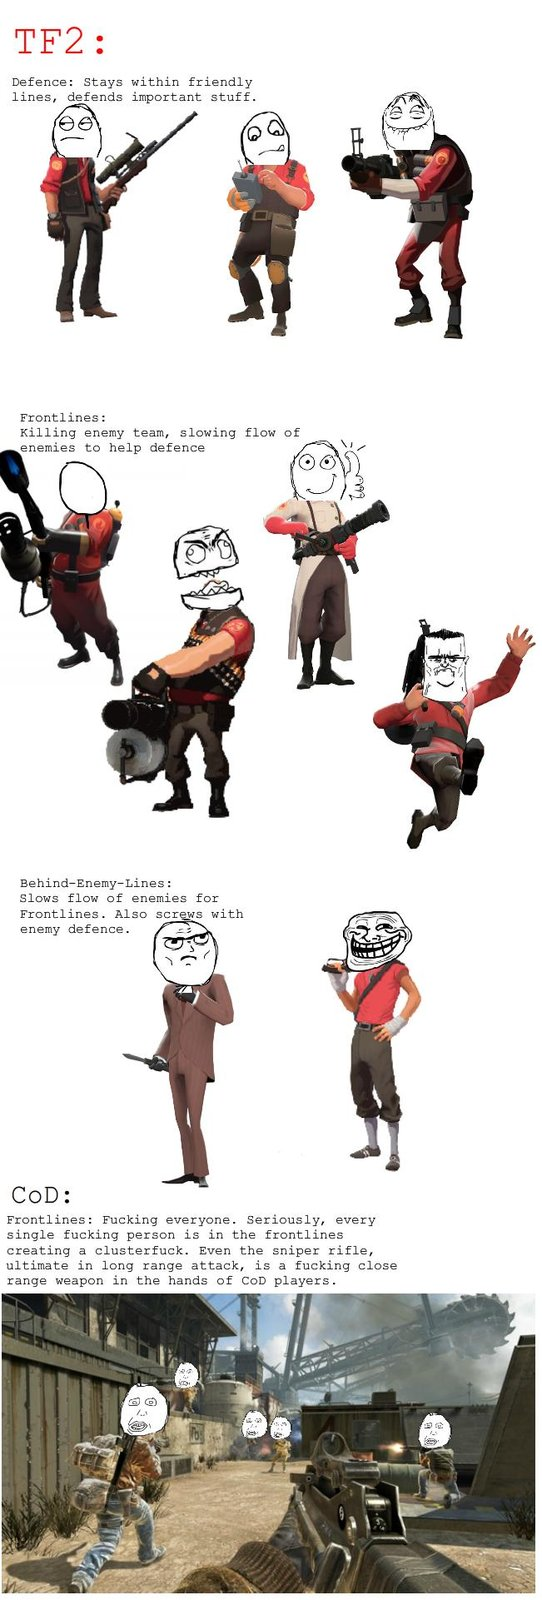 Team Fortress 2 vs. Call of Duty